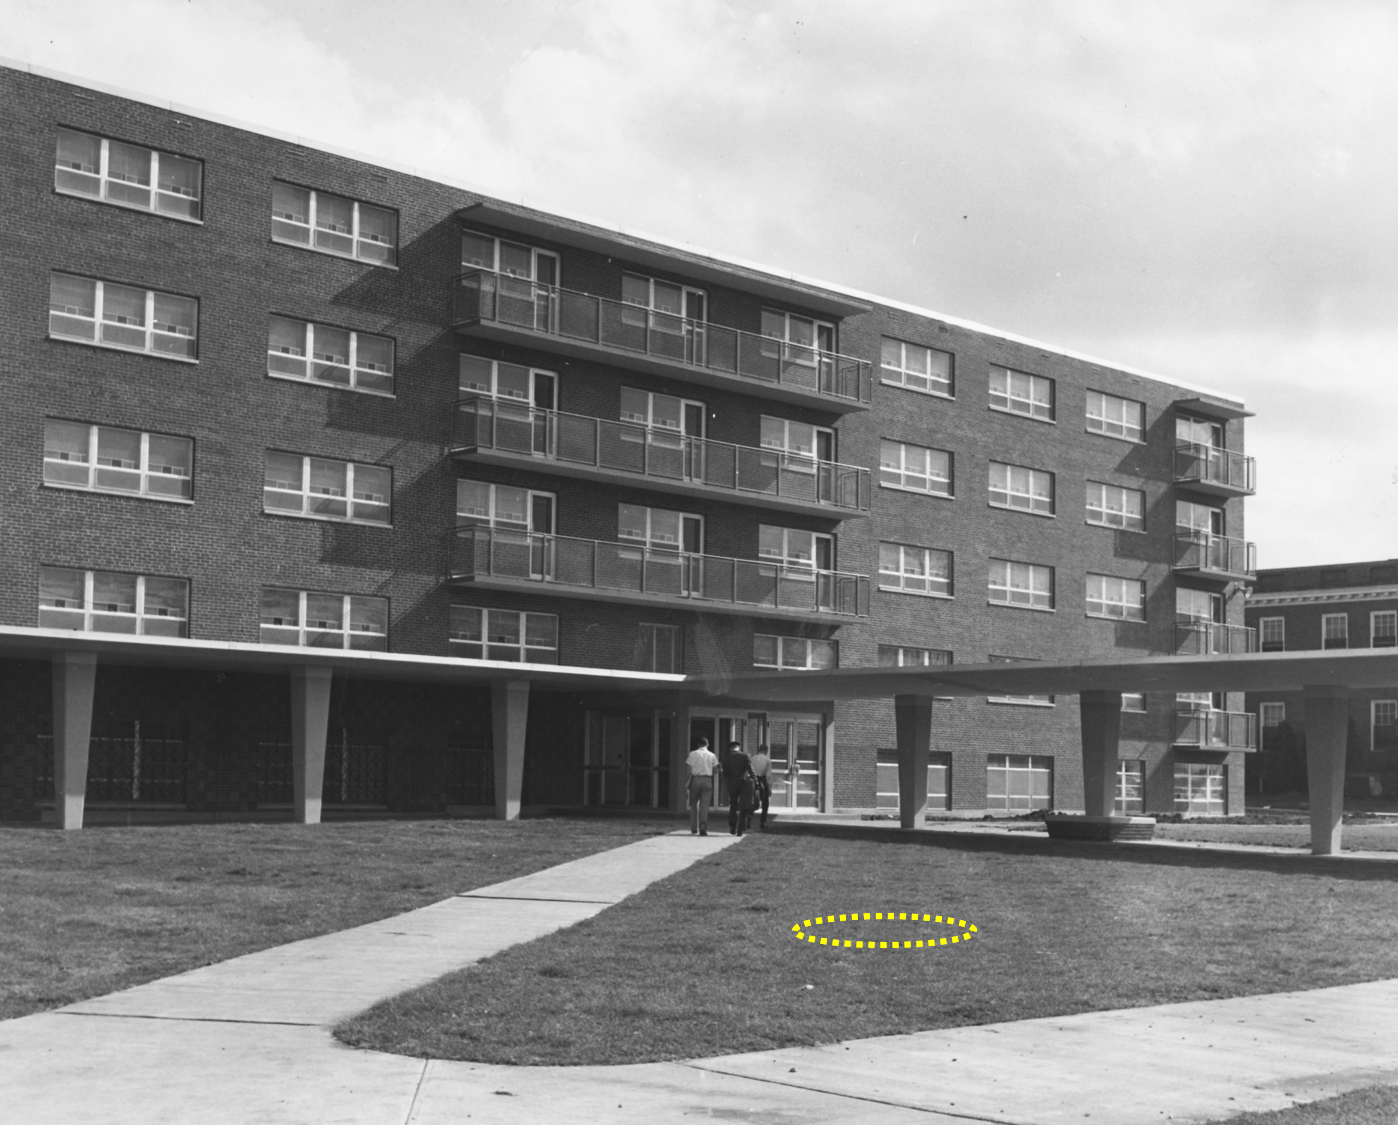 Donovan Hall in 1955